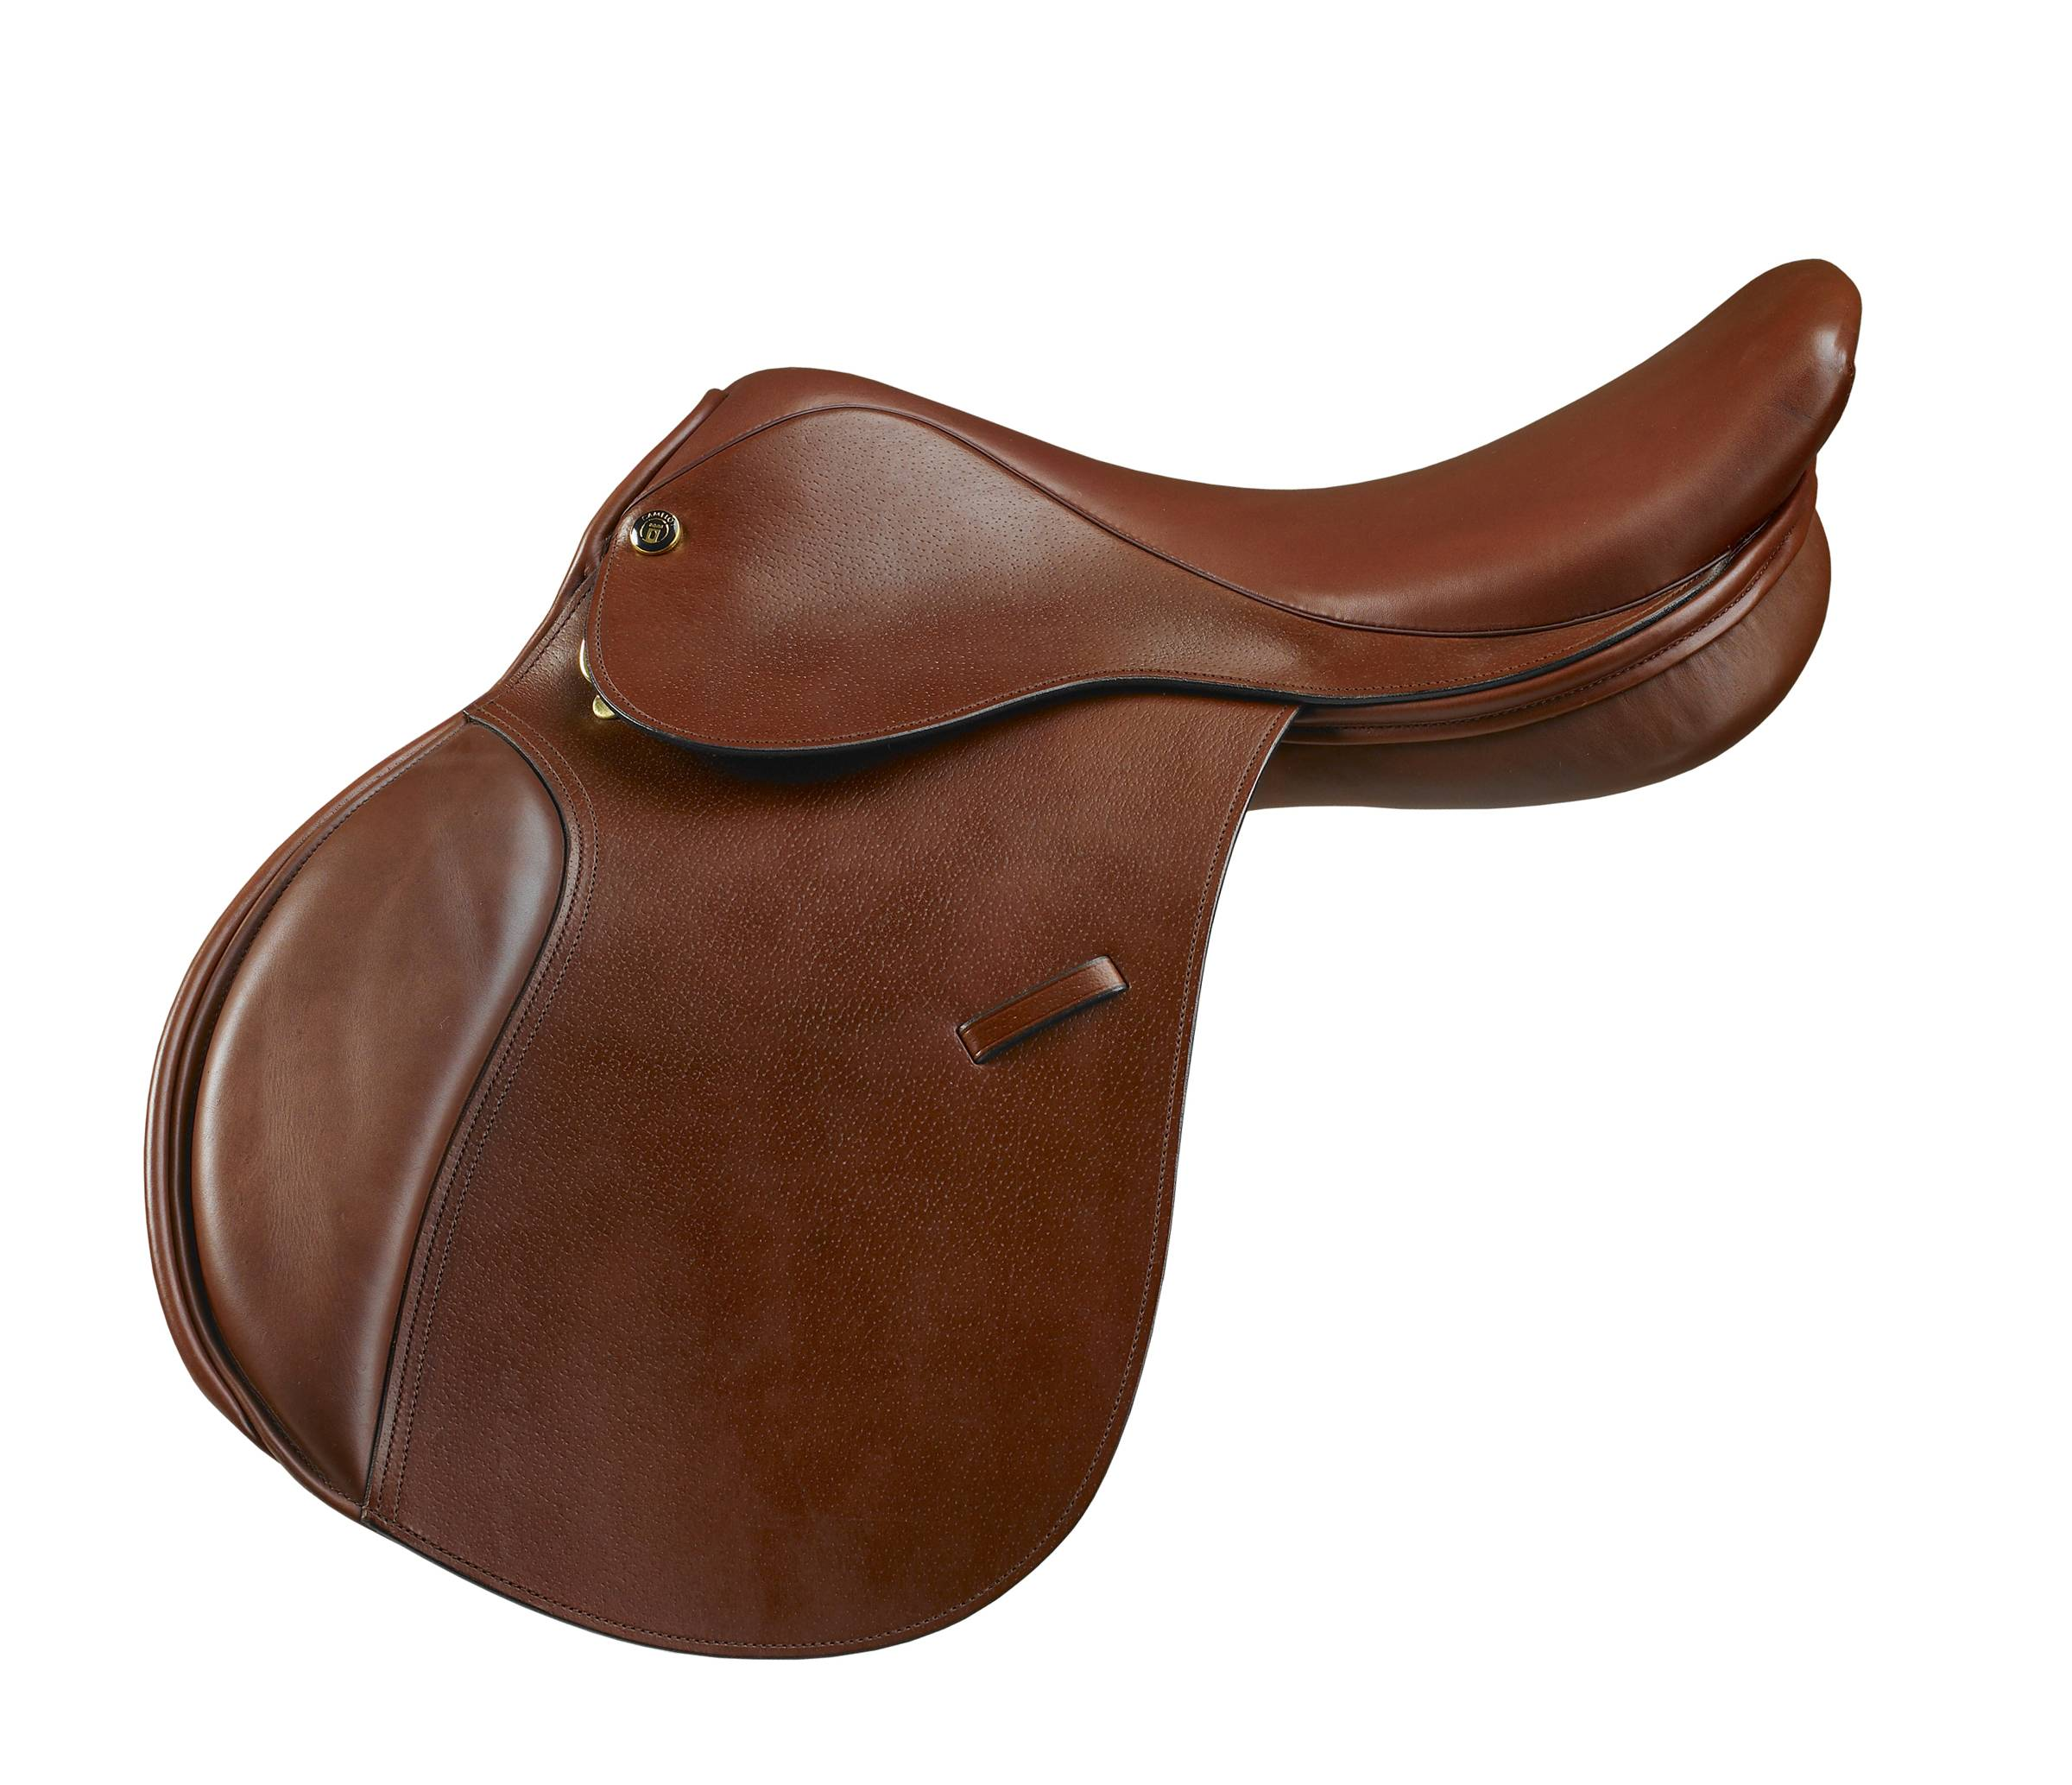 Camelot Close Contact Saddle